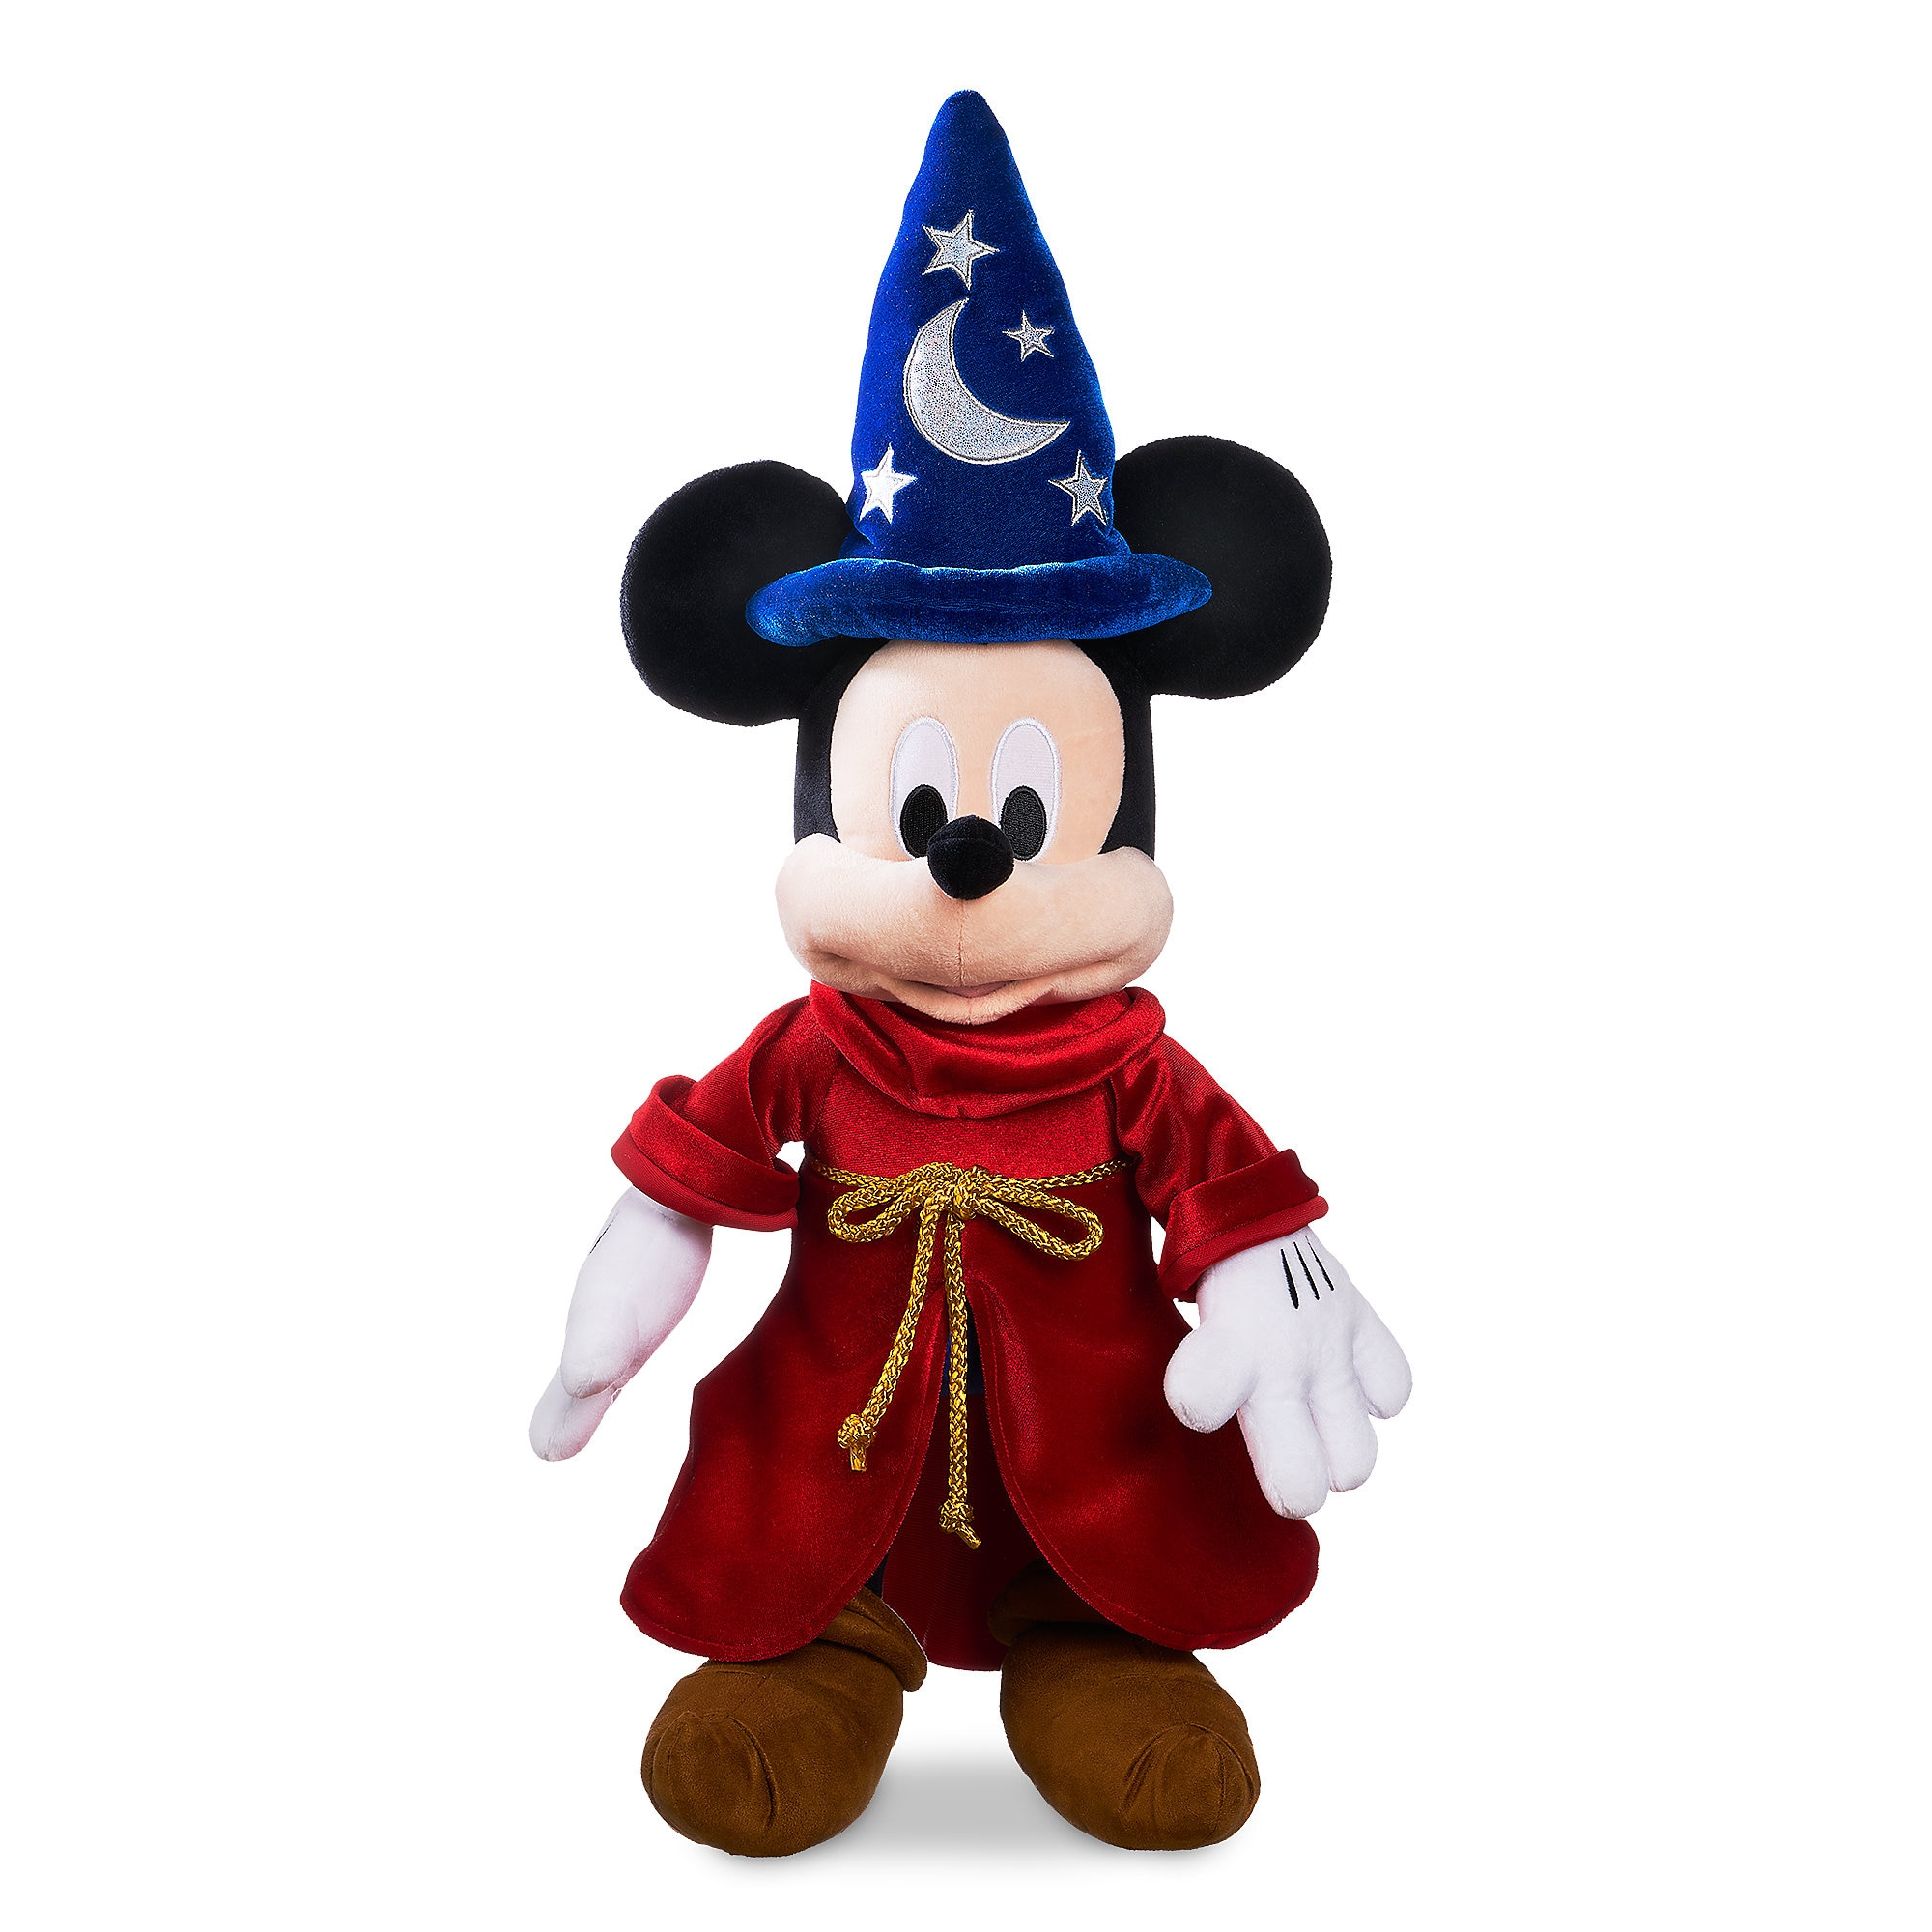 Sorcerer Mickey Mouse Plush - Fantasia - Medium  sc 1 st  shopDisney & Sorcerer Mickey Mouse Plush - Fantasia - Medium | shopDisney